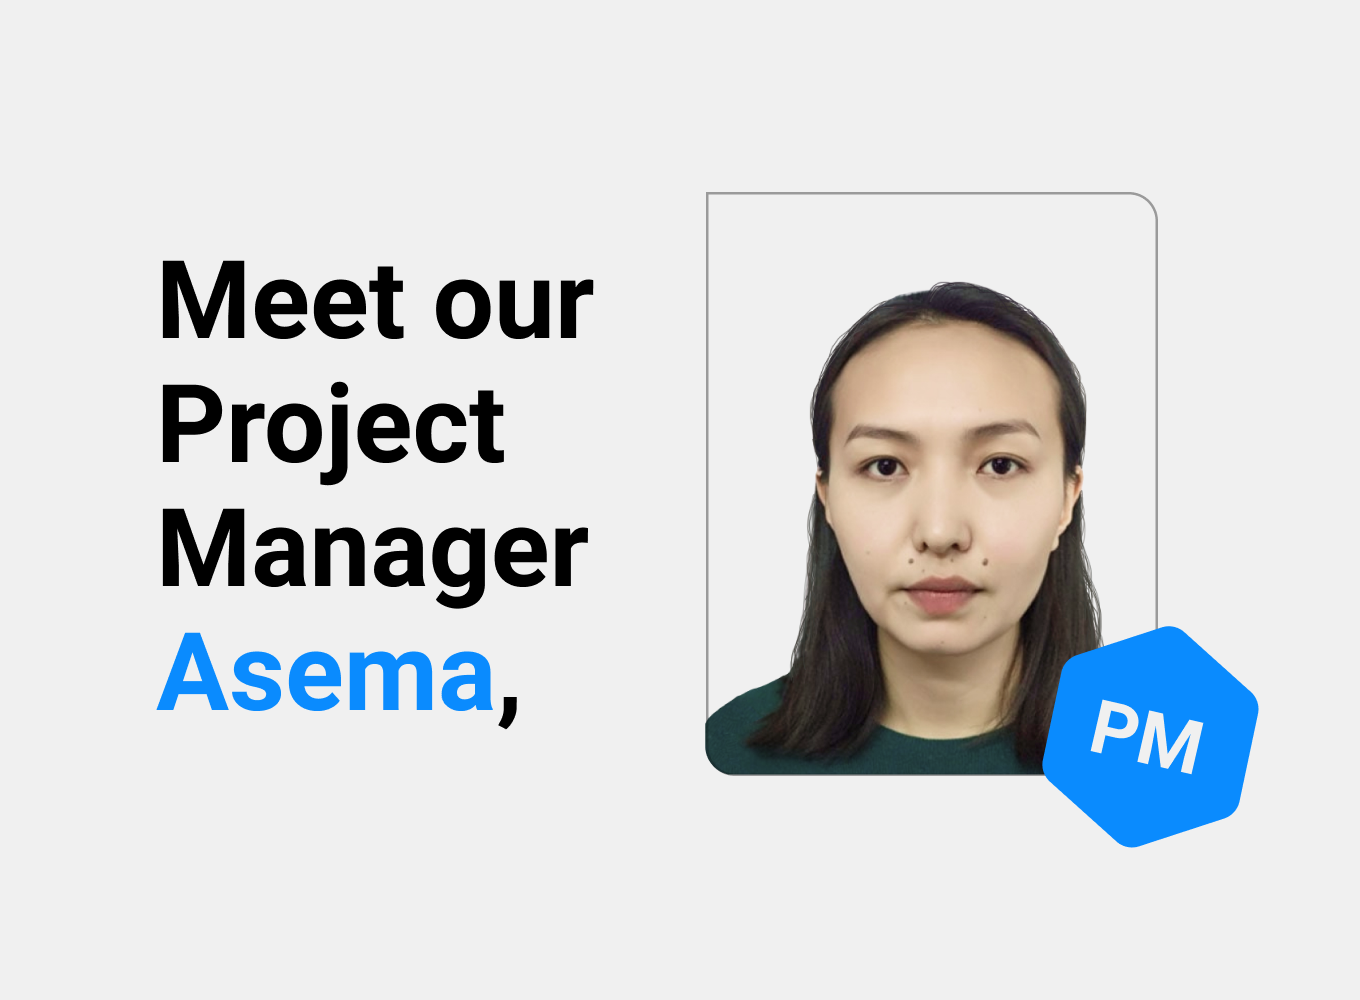 Meet Sema, the project manager at appello software